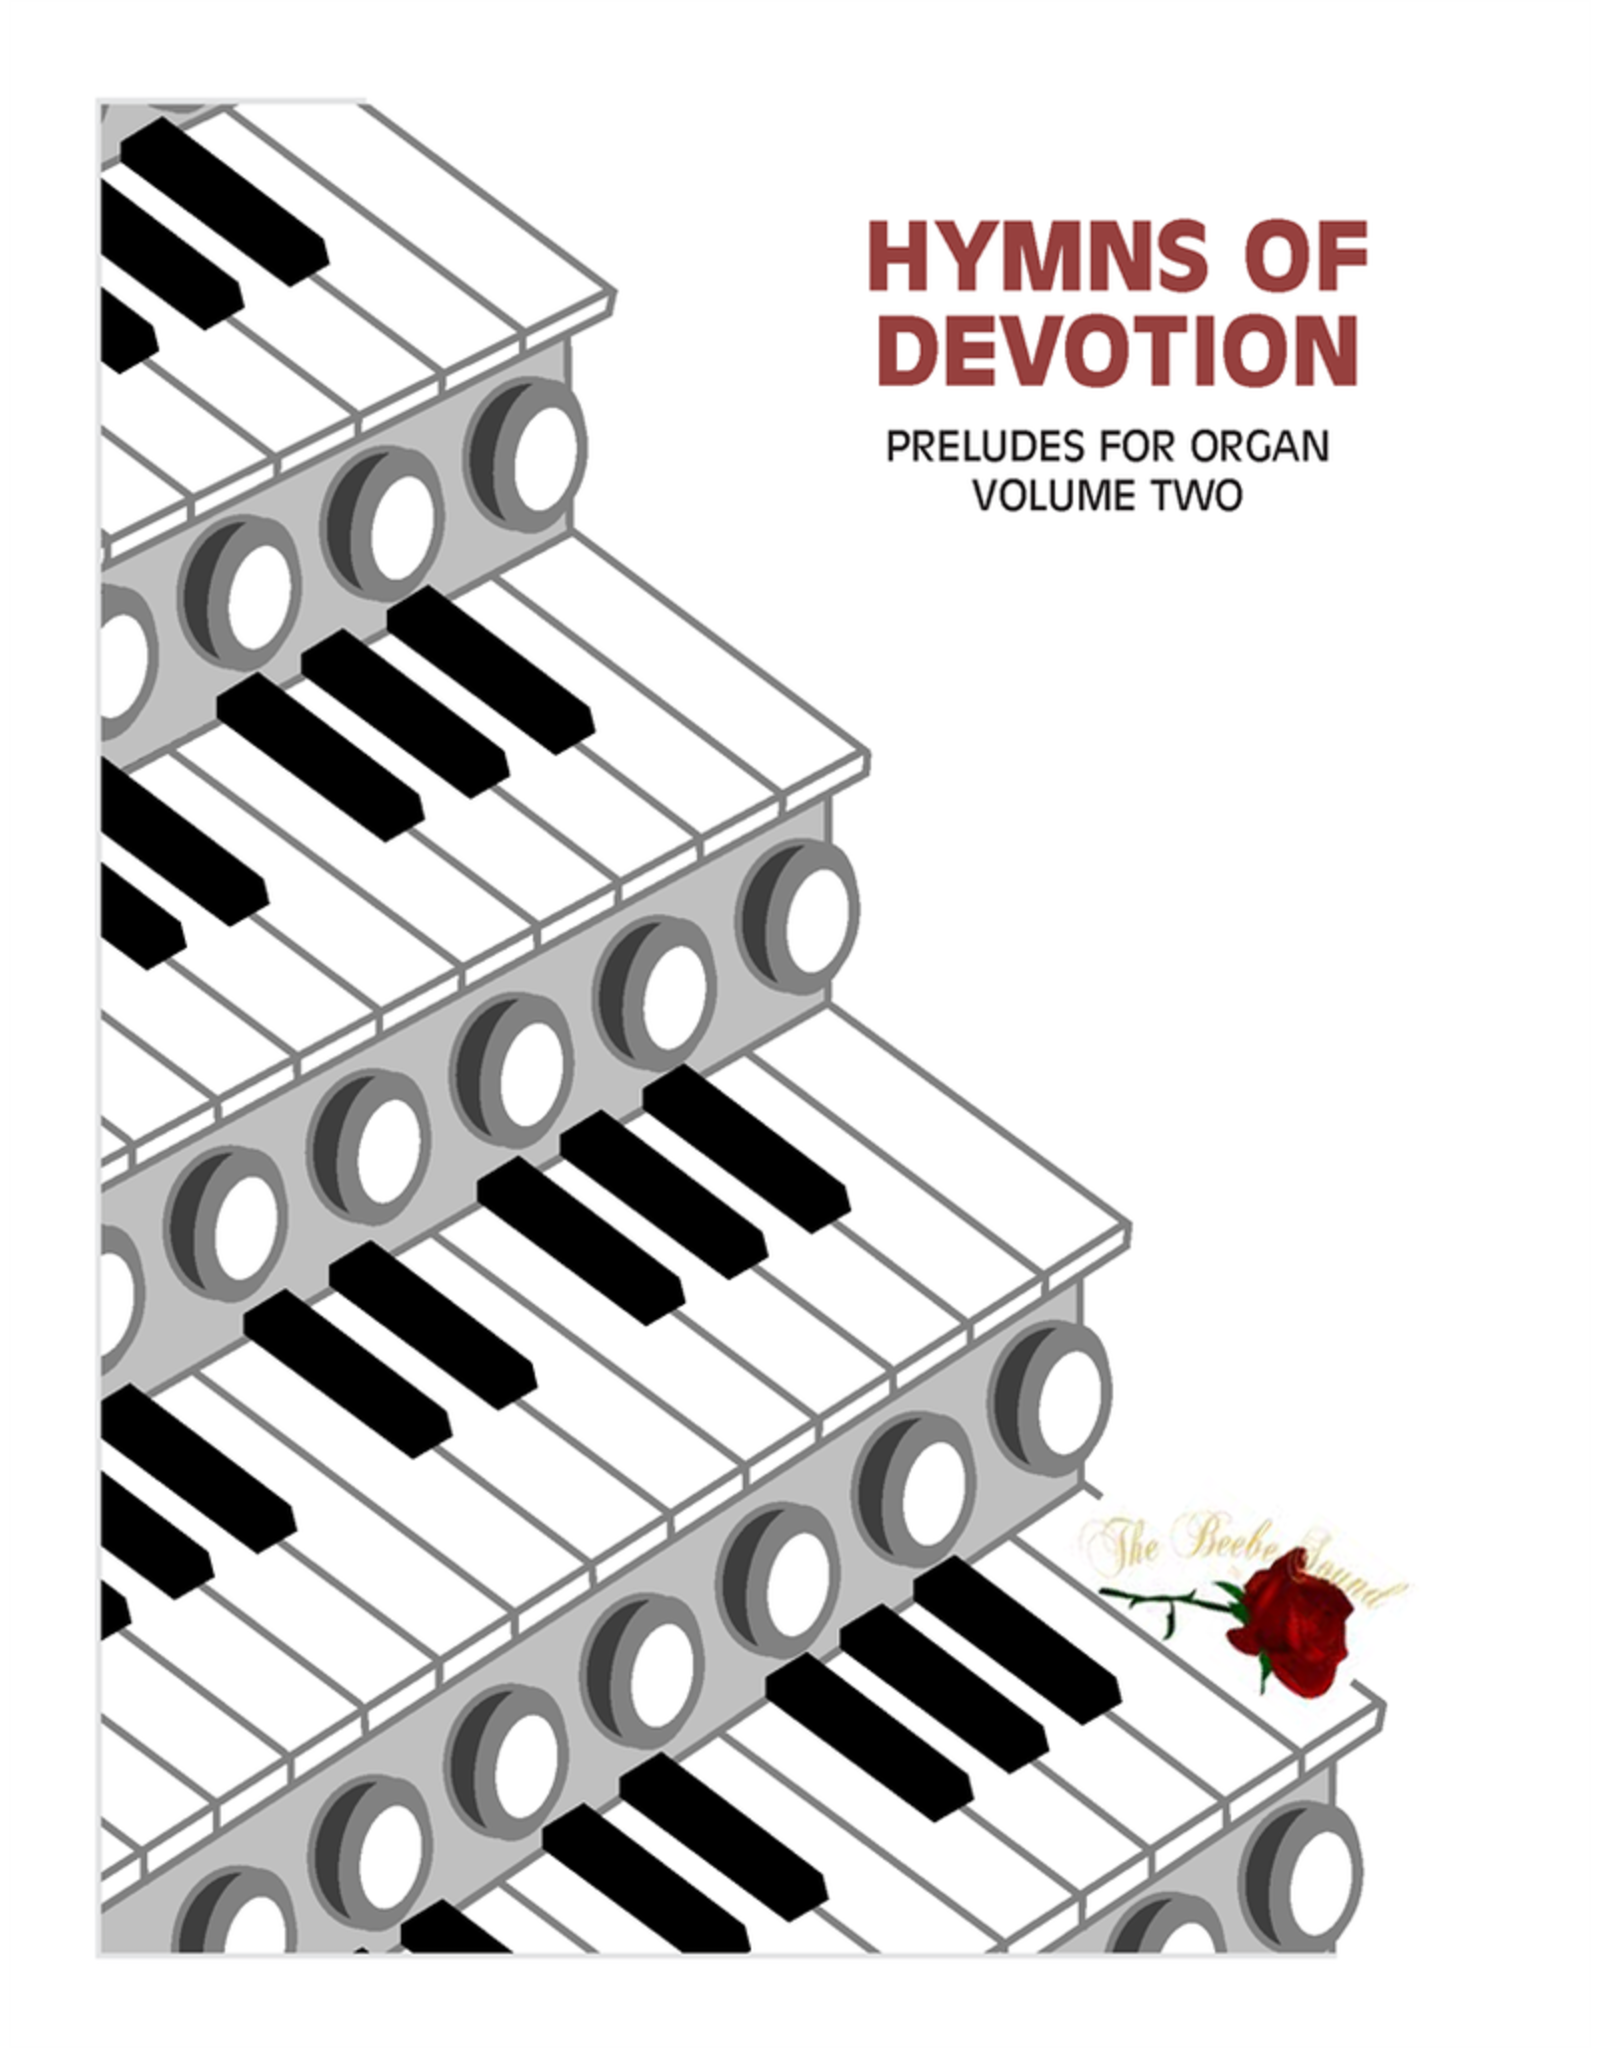 Larice Music Hymns of Devotion Preludes for Organ Vol. 2 arr. Larry Beebe